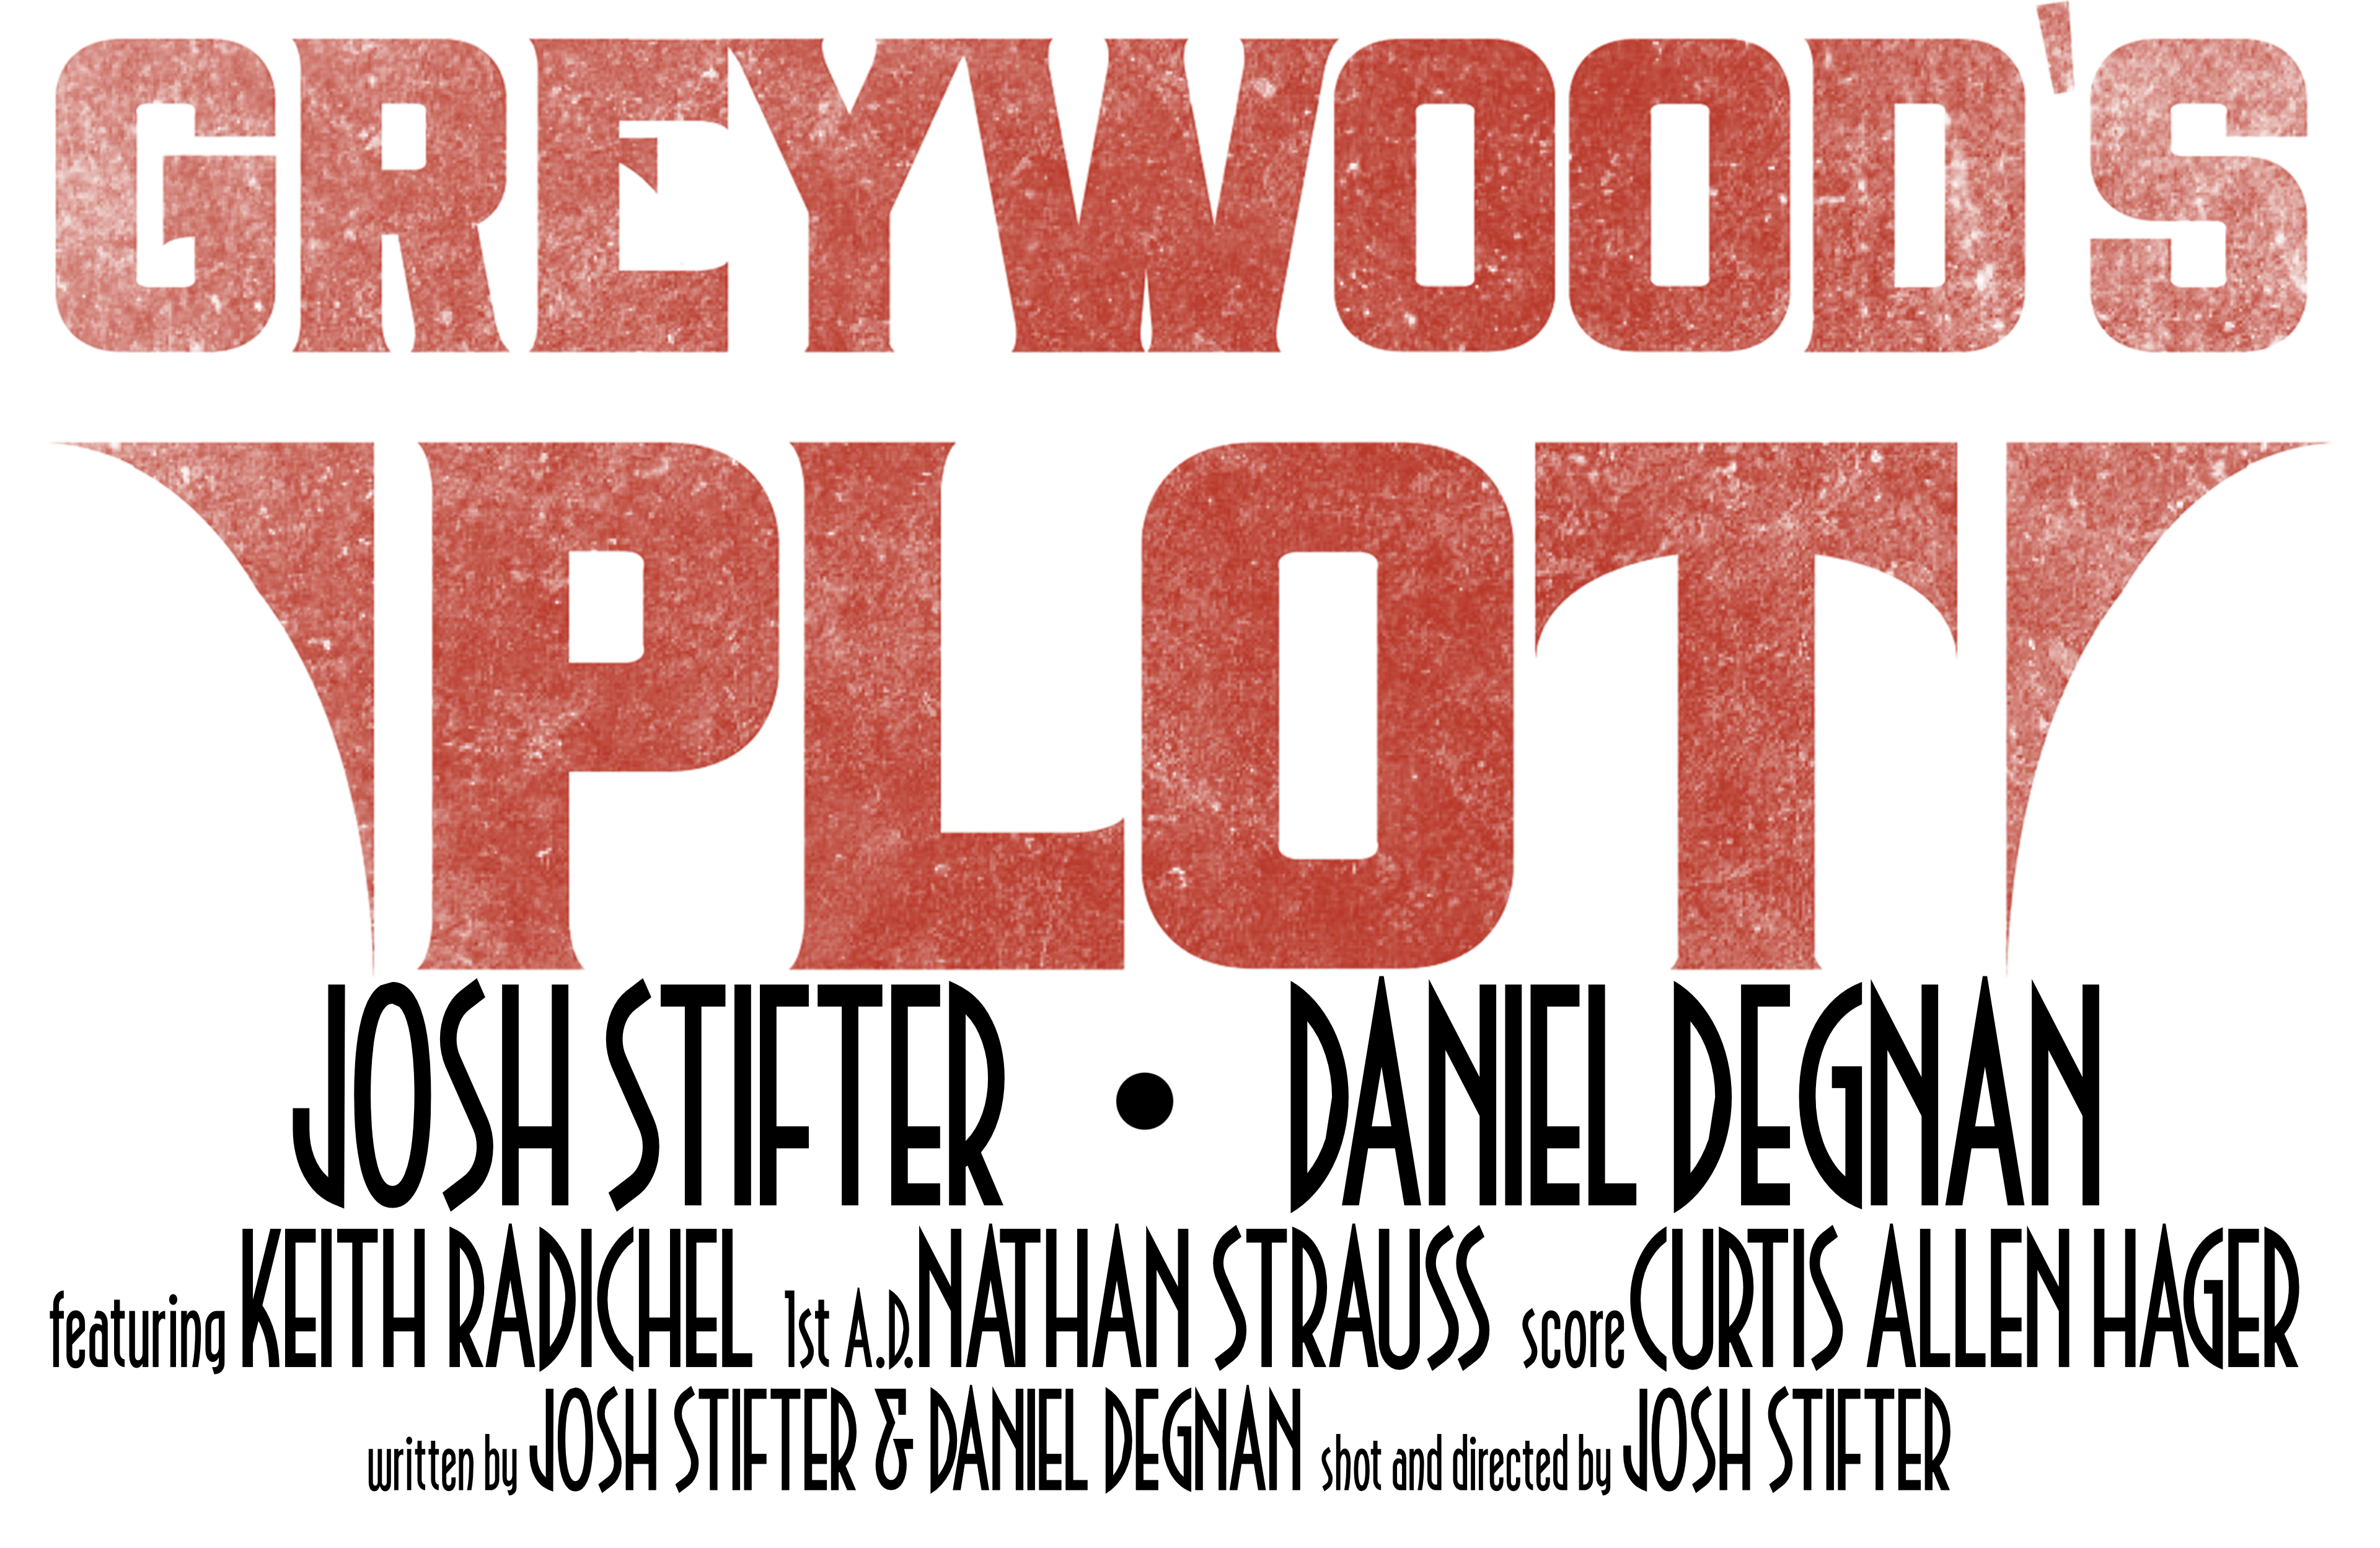 Greywood's Plot. Josh Stifter and Daniel Degnan. Featuring Keith Radichel. First A.D. by Nathan Strauss. Score by Curtis Allen Hager. Written by Josh Stifter and Daniel Degnan. Shot and directed by Josh Stifter.